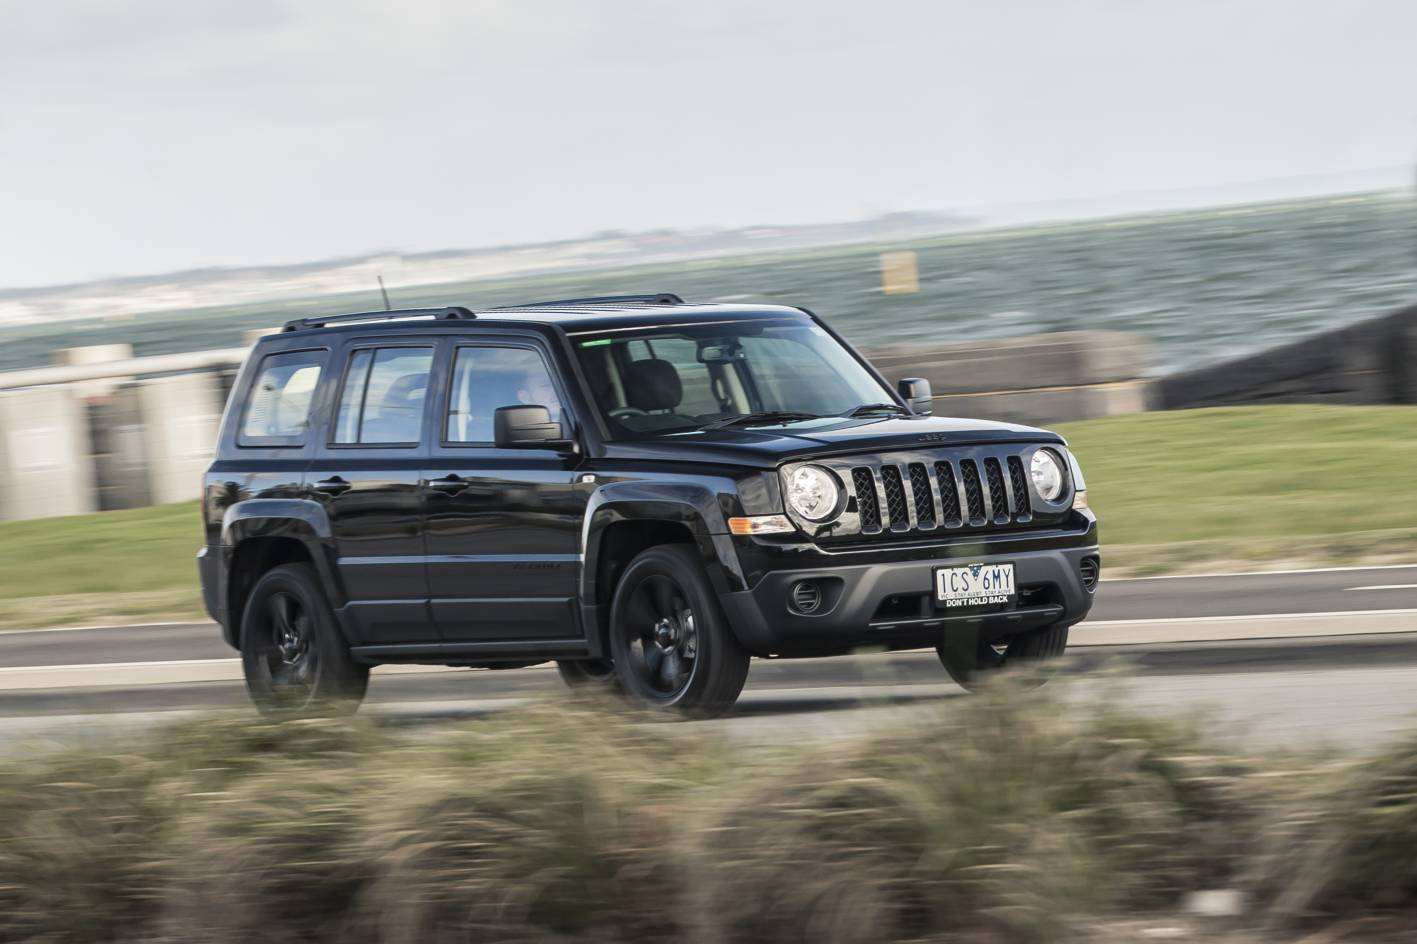 Jeep Patriot Review: 2015 Patriot Blackhawk